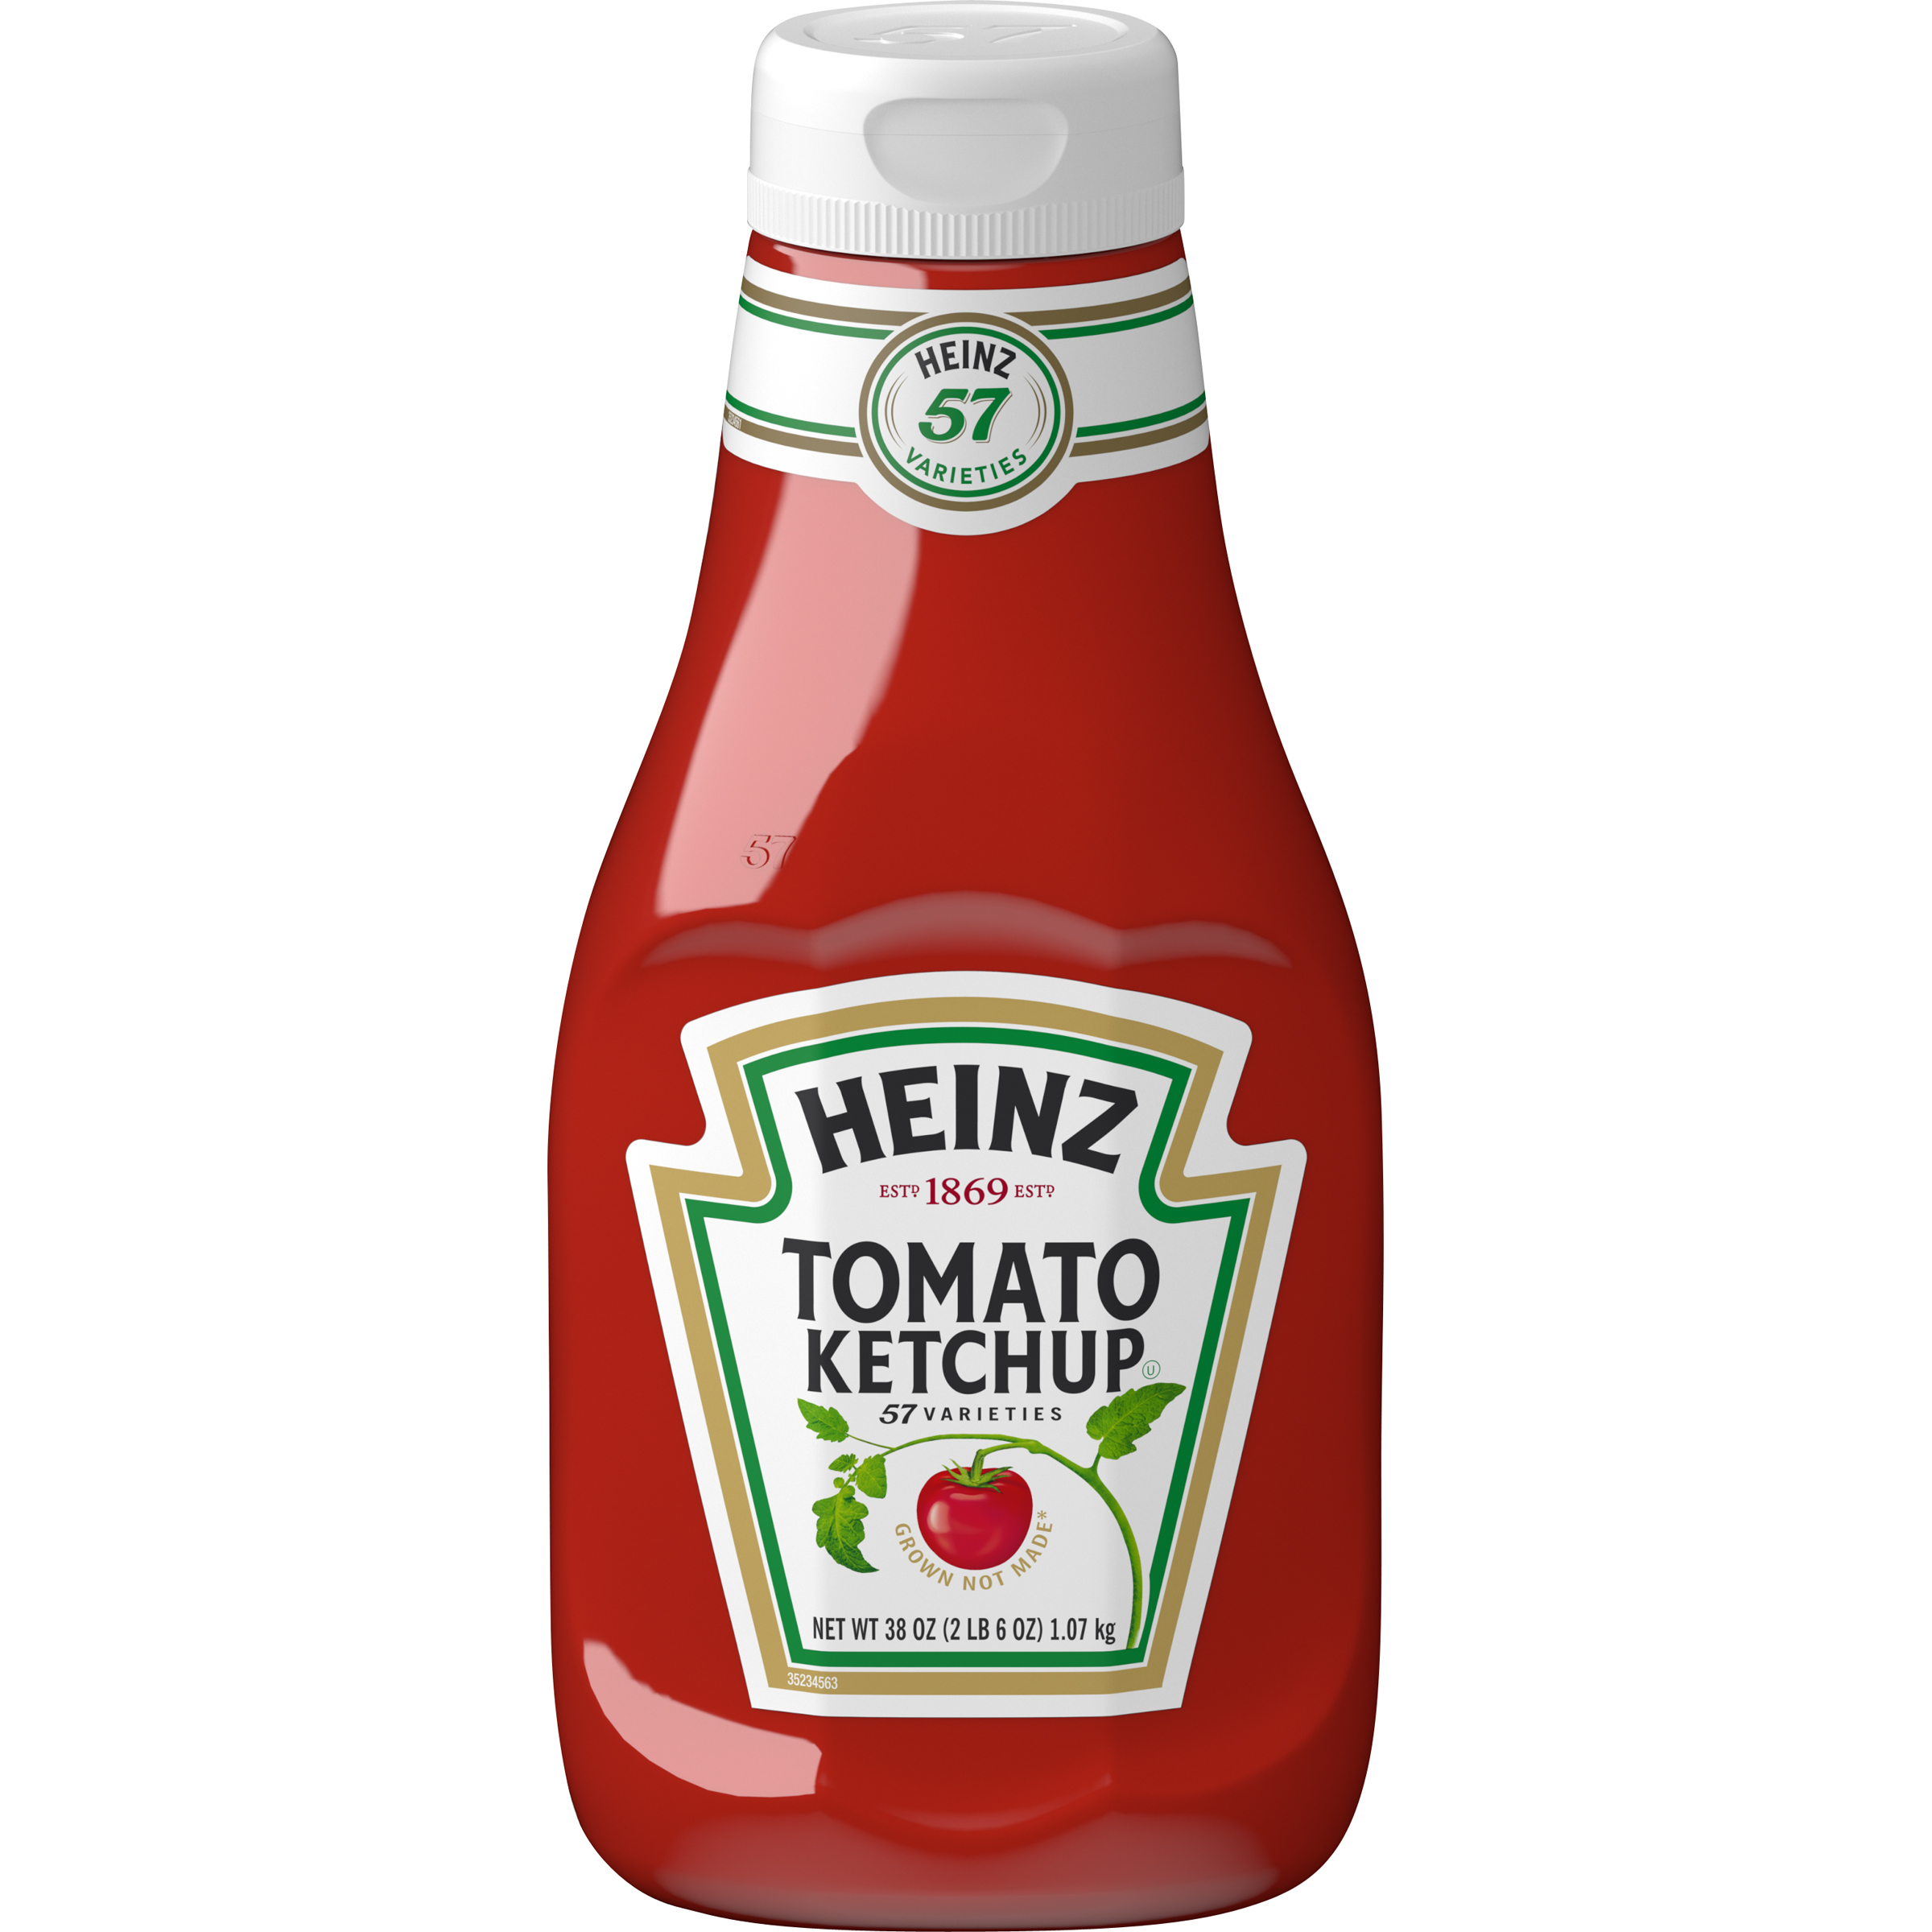 Cucina Antica Tomato Ketchup Free Photo Ketchup Pouring Red Organic Free Download